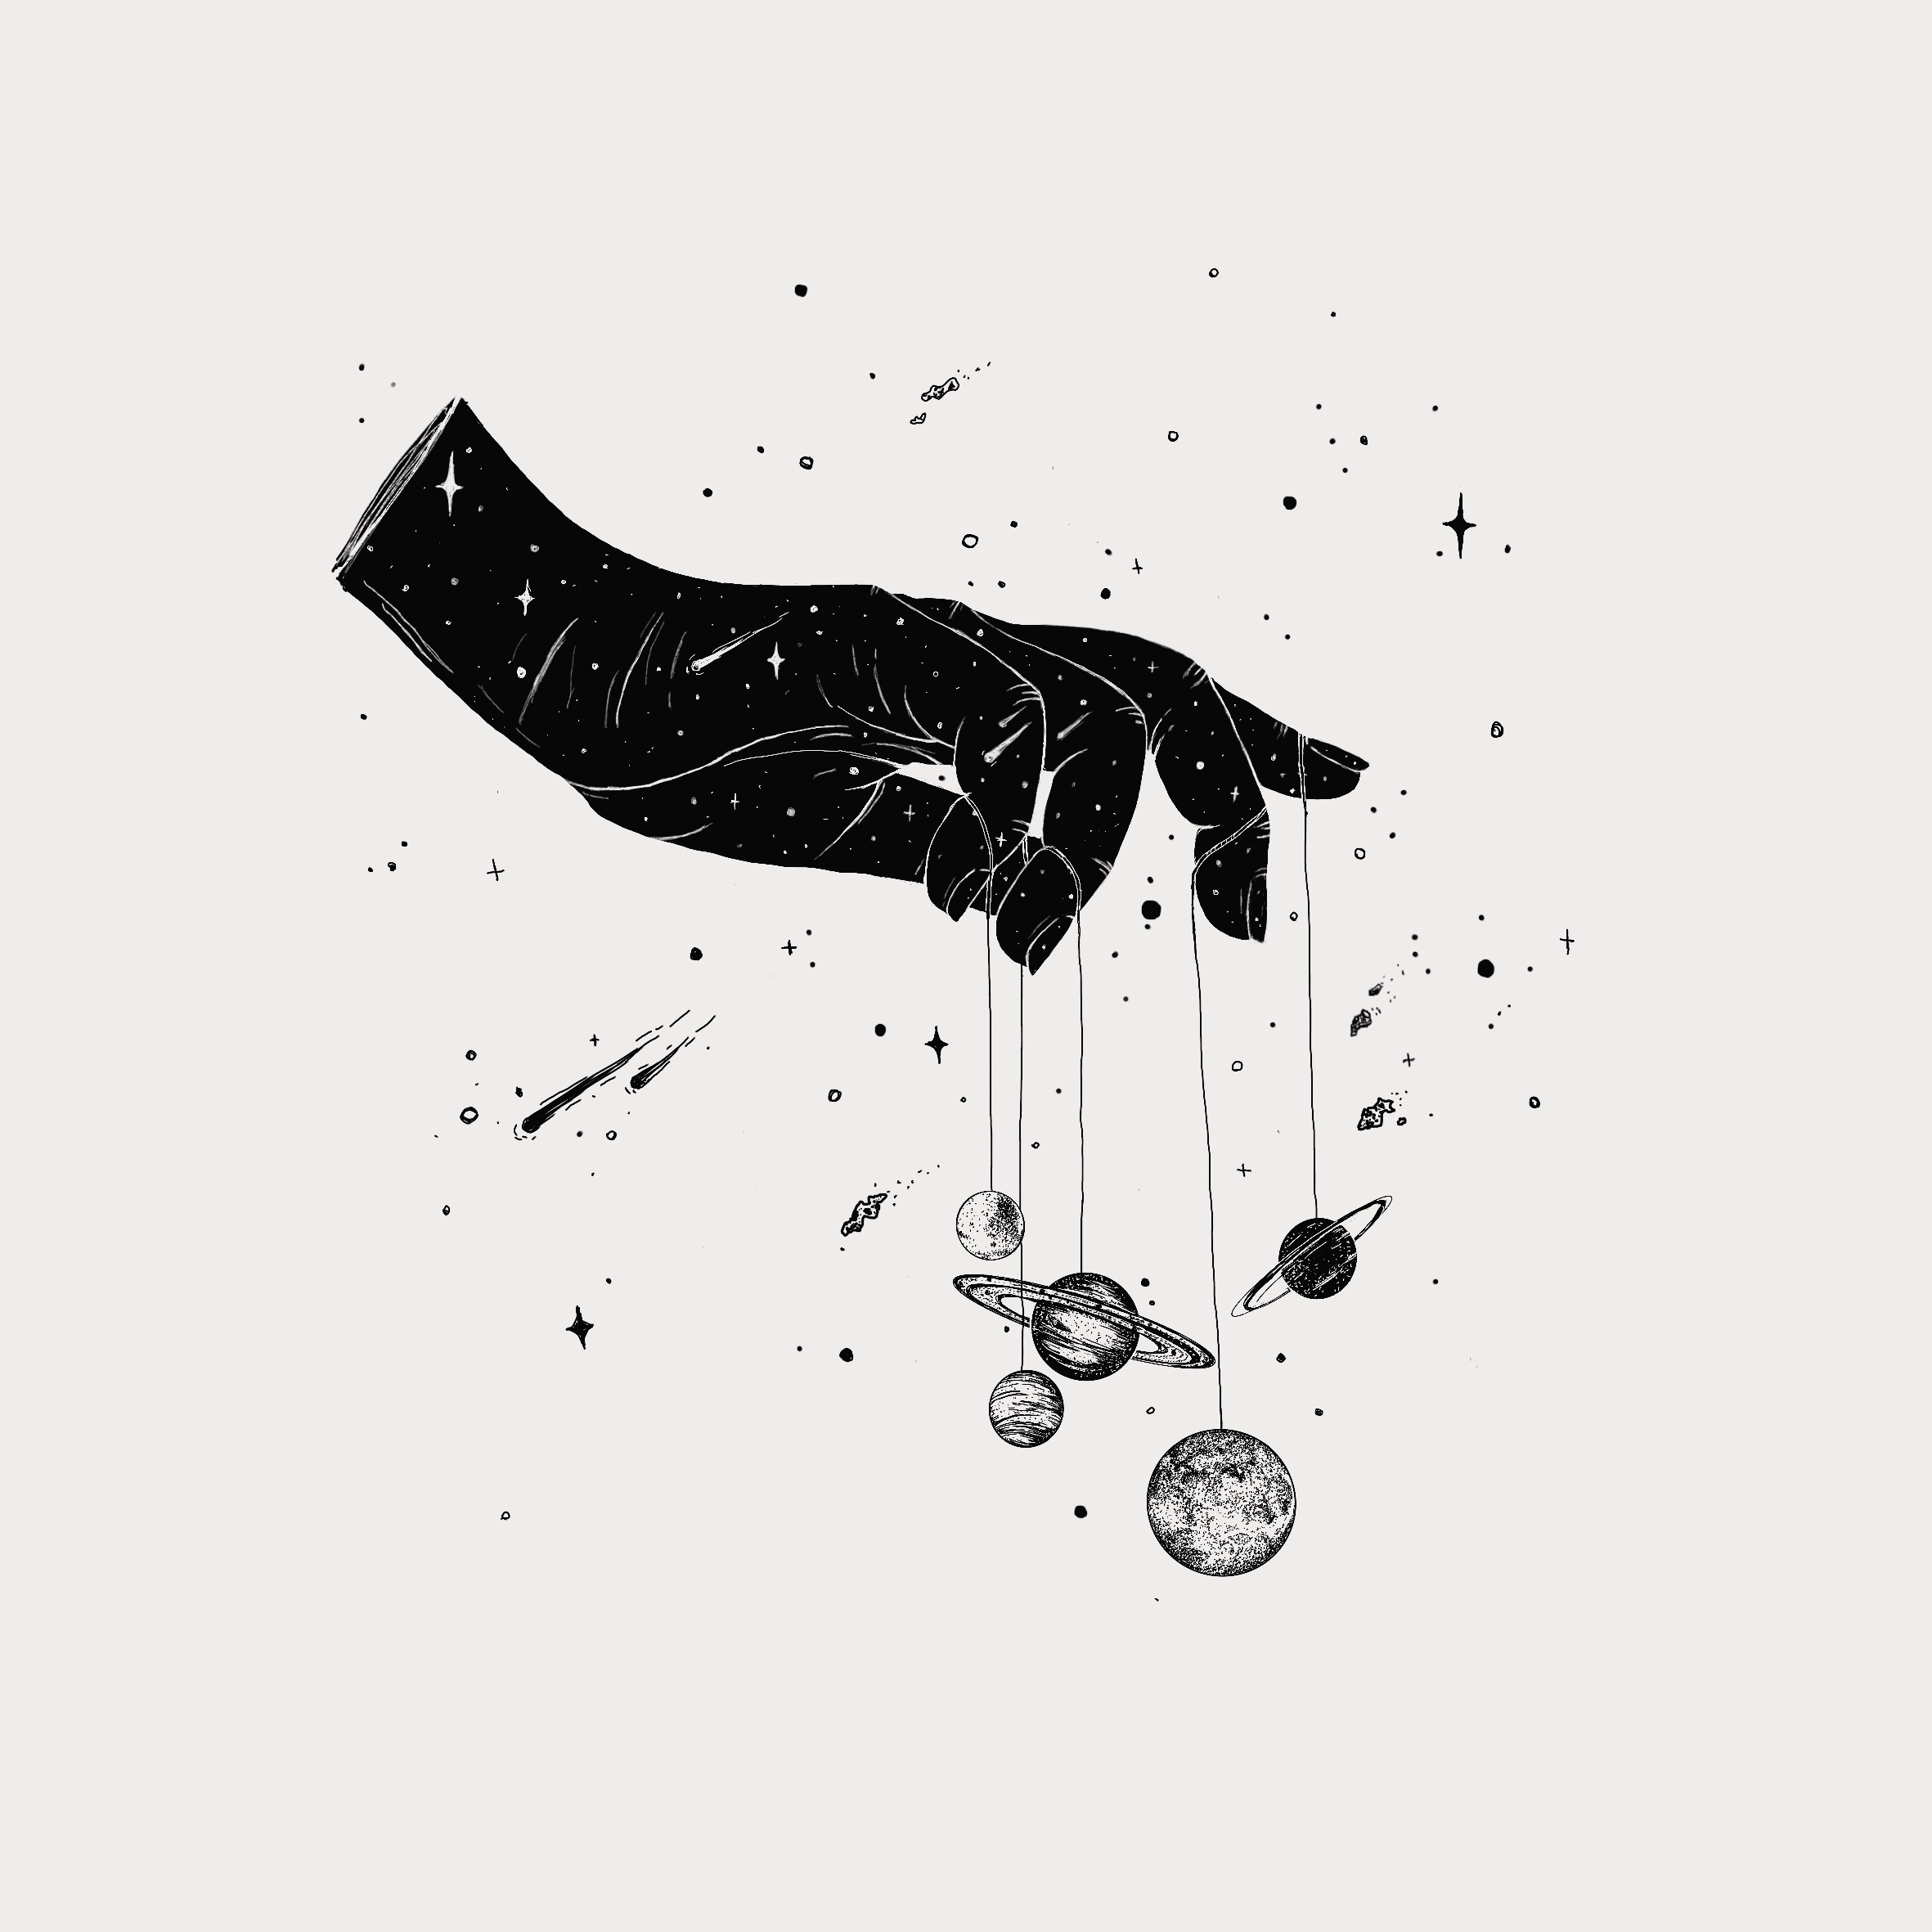 Hand – Planets